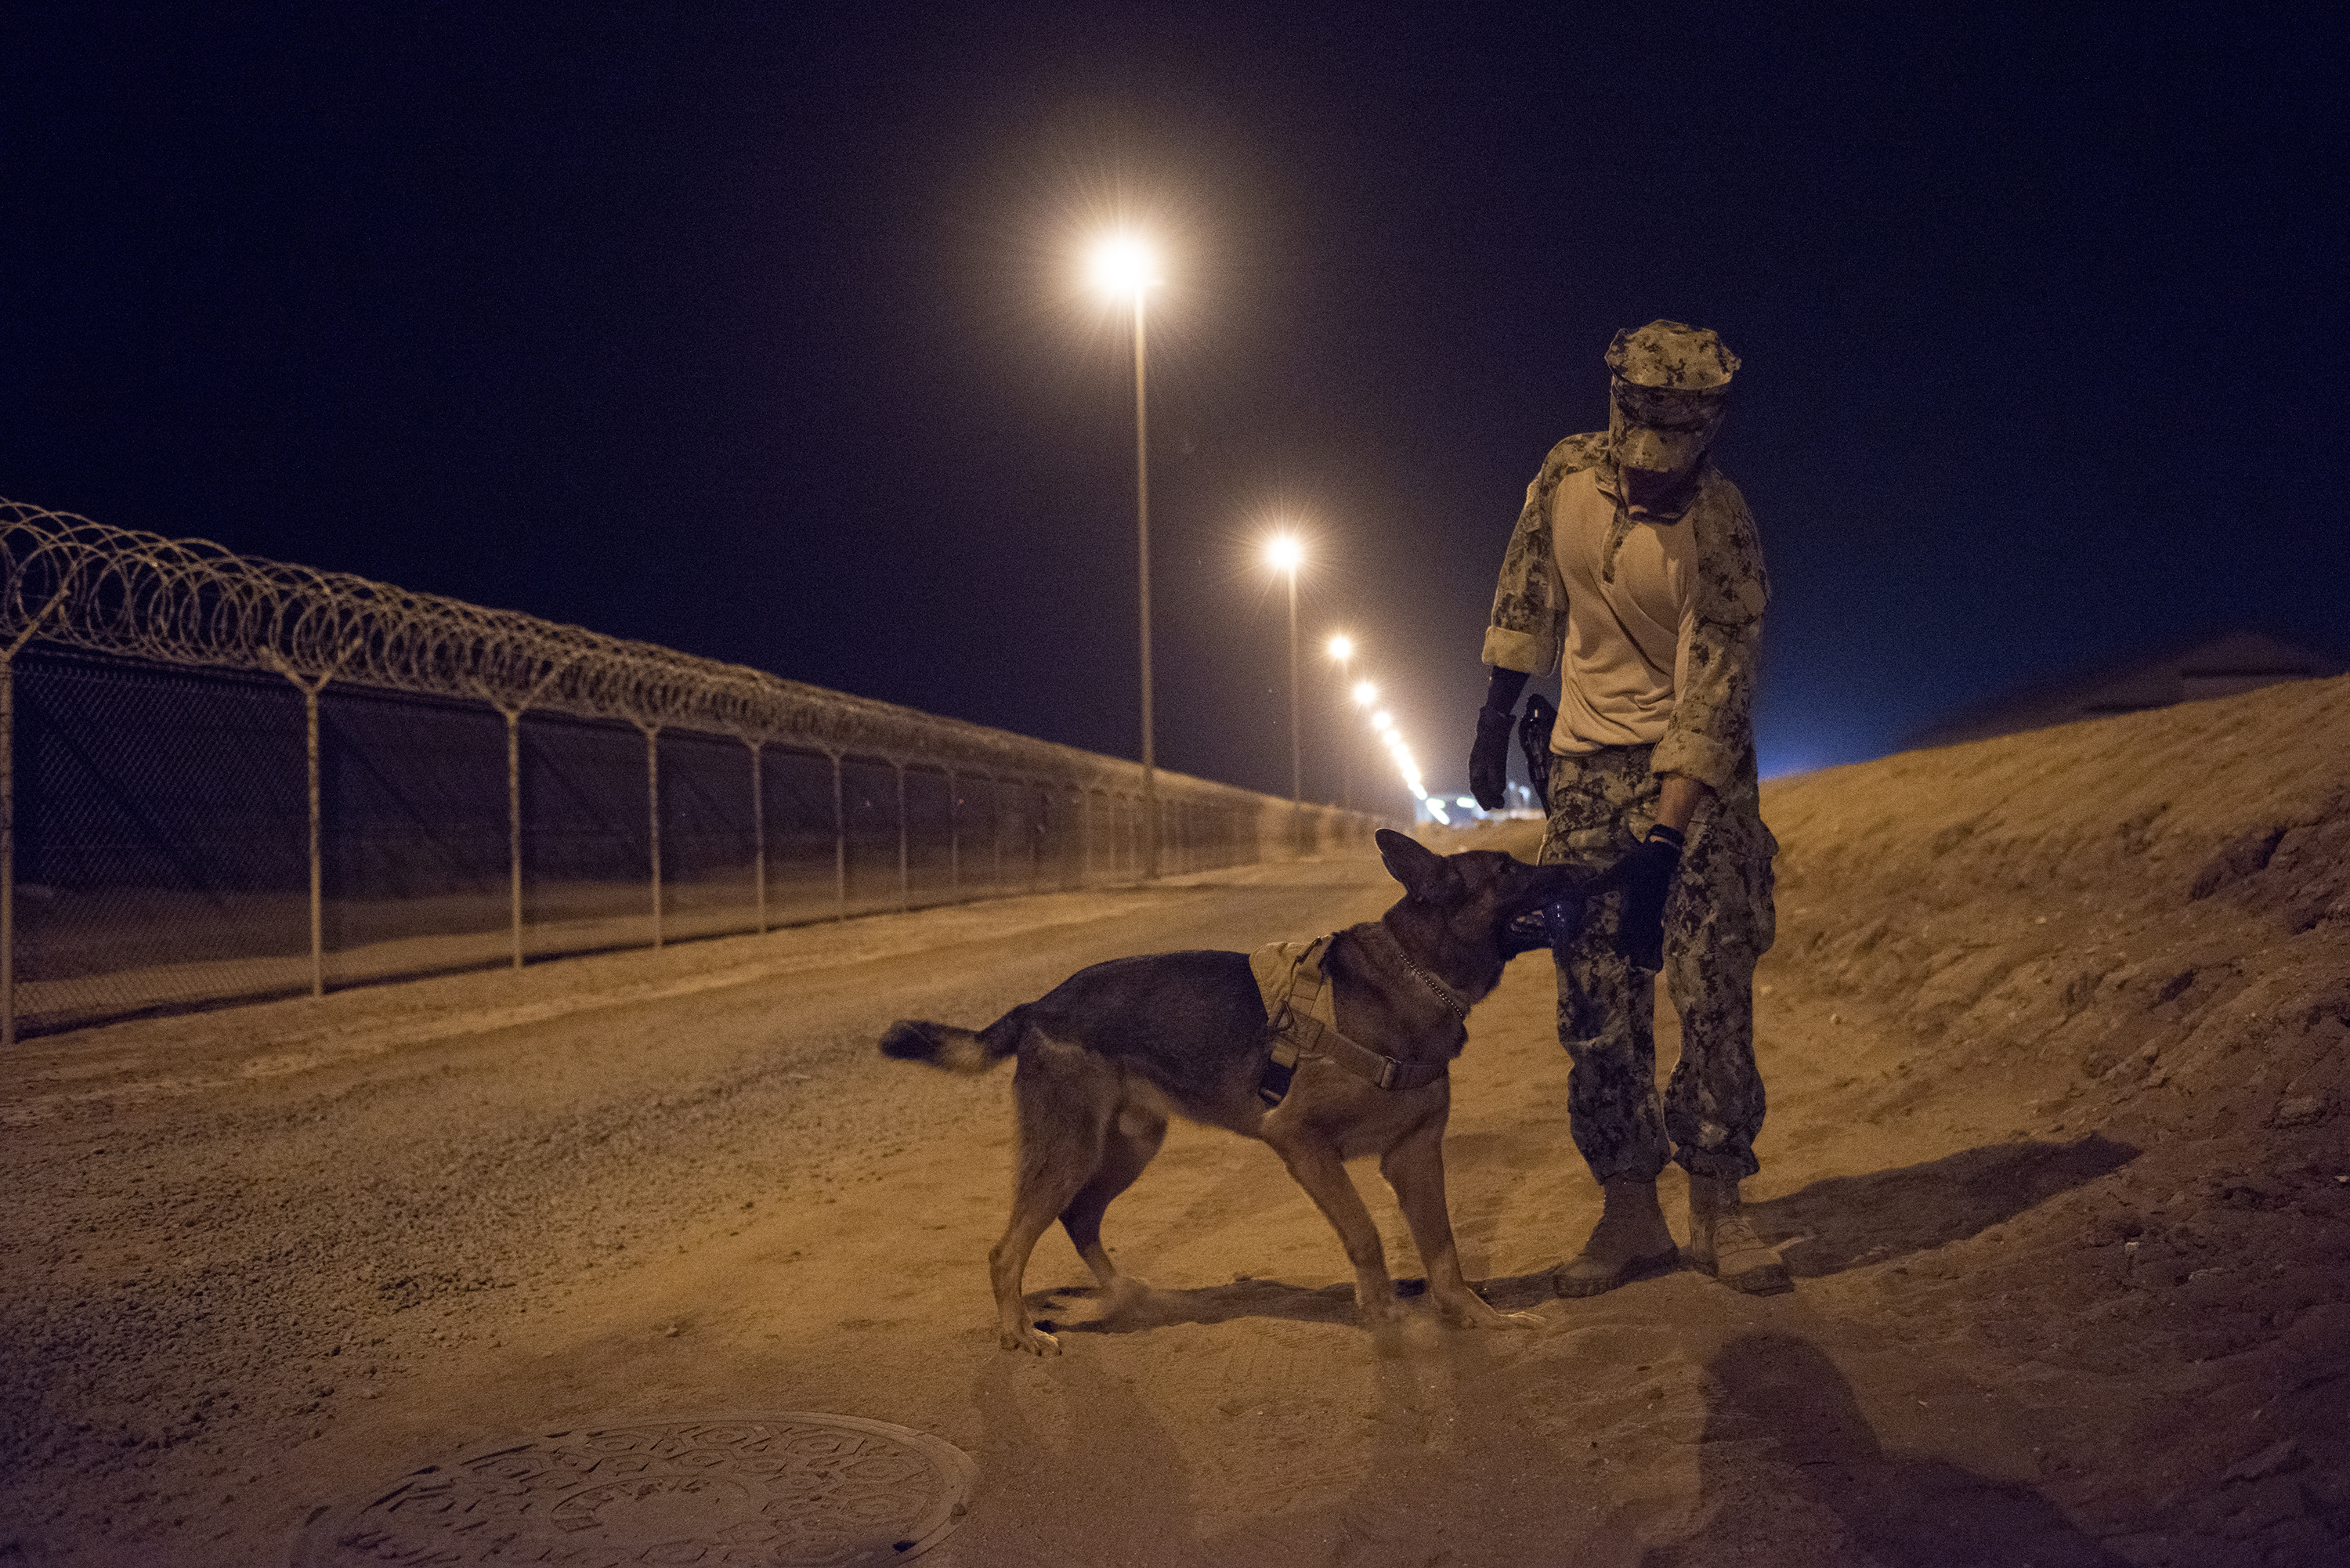 U.S. Navy Master-at-Arms 3rd Class Jordan Fuentes, a military working dog (MWD) handler rewards MWD Rex after conducting proficiency training on Camp Lemonnier, Djibouti, July 31, 2018. Military Working Dogs can be used to perform searches, subdue suspects, and detect explosives and narcotics. (U.S. Air National Guard photo by Master Sgt. Sarah Mattison)